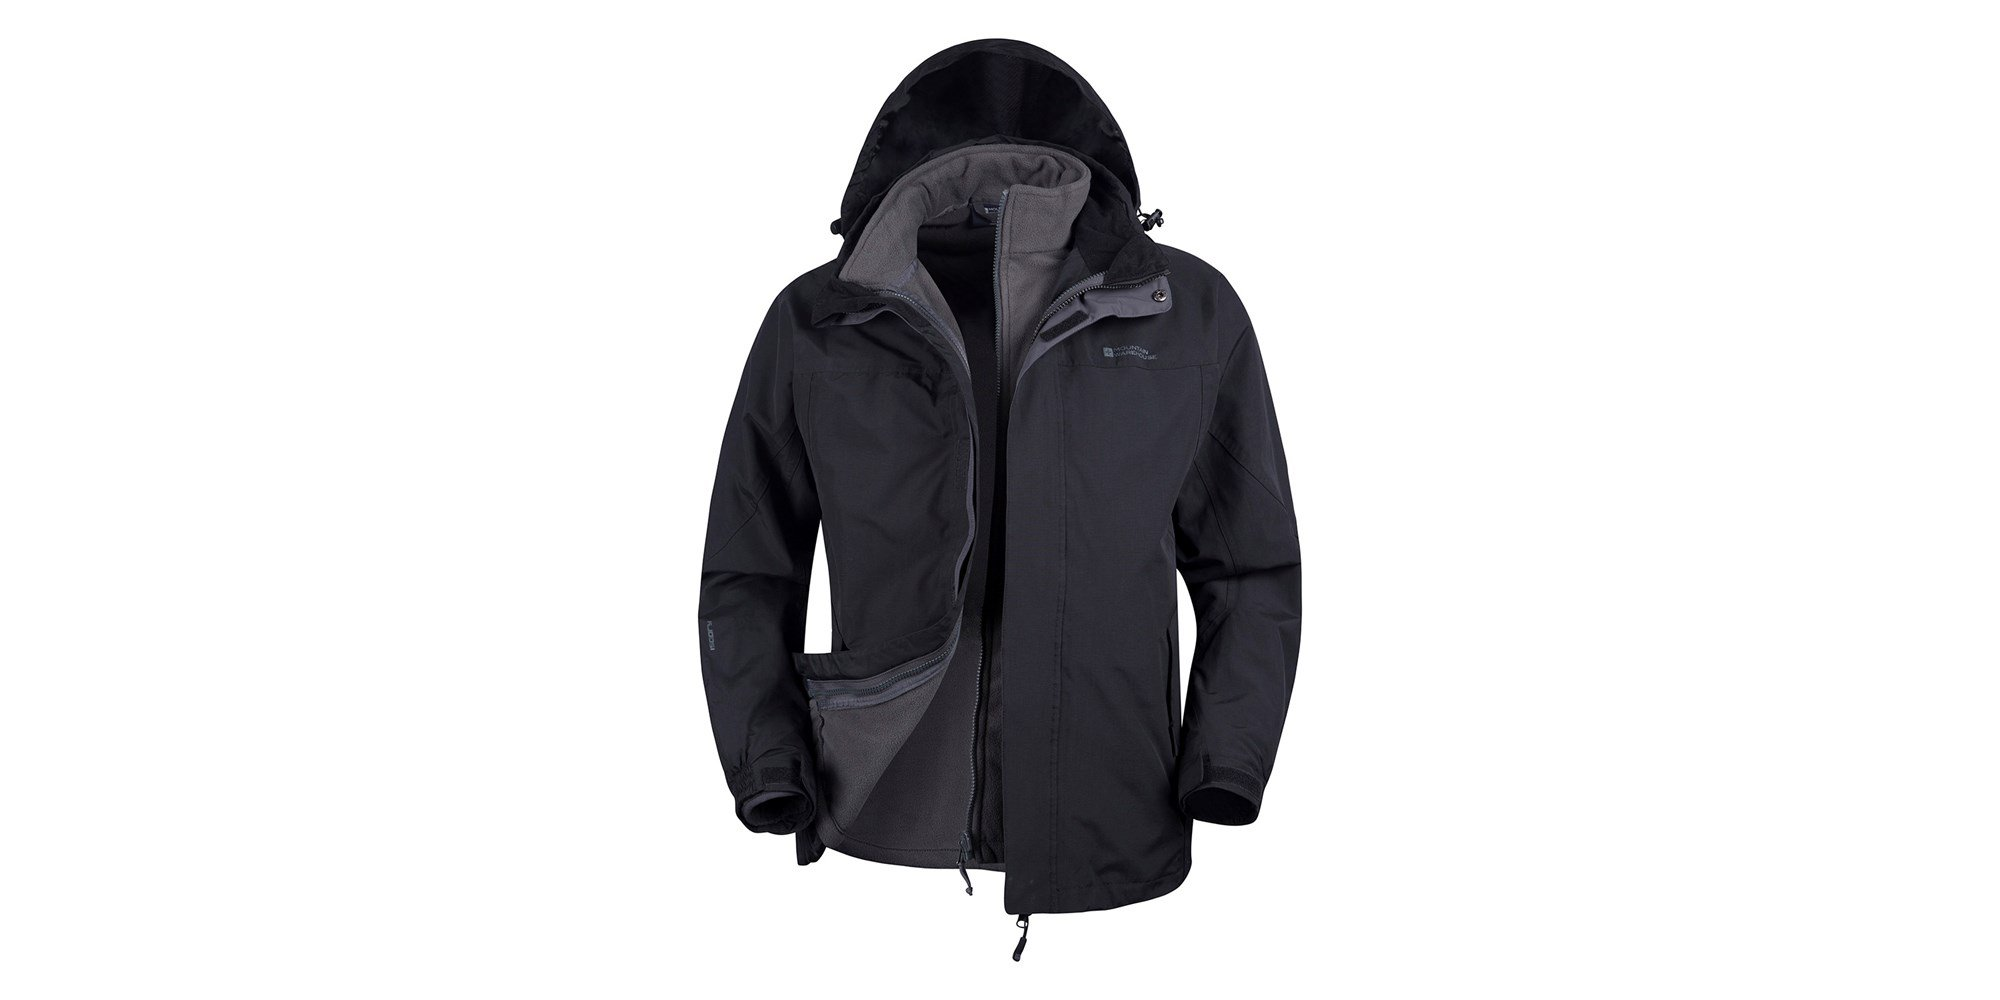 men's jackets, coats and vests Stay warm and dry no matter where you are with our selection of men's jackets, coats and vests. Our collection of men's outerwear features waterproof, hooded, insulated and water-resistant options ranging from waterproof jackets to insulated men's vests.